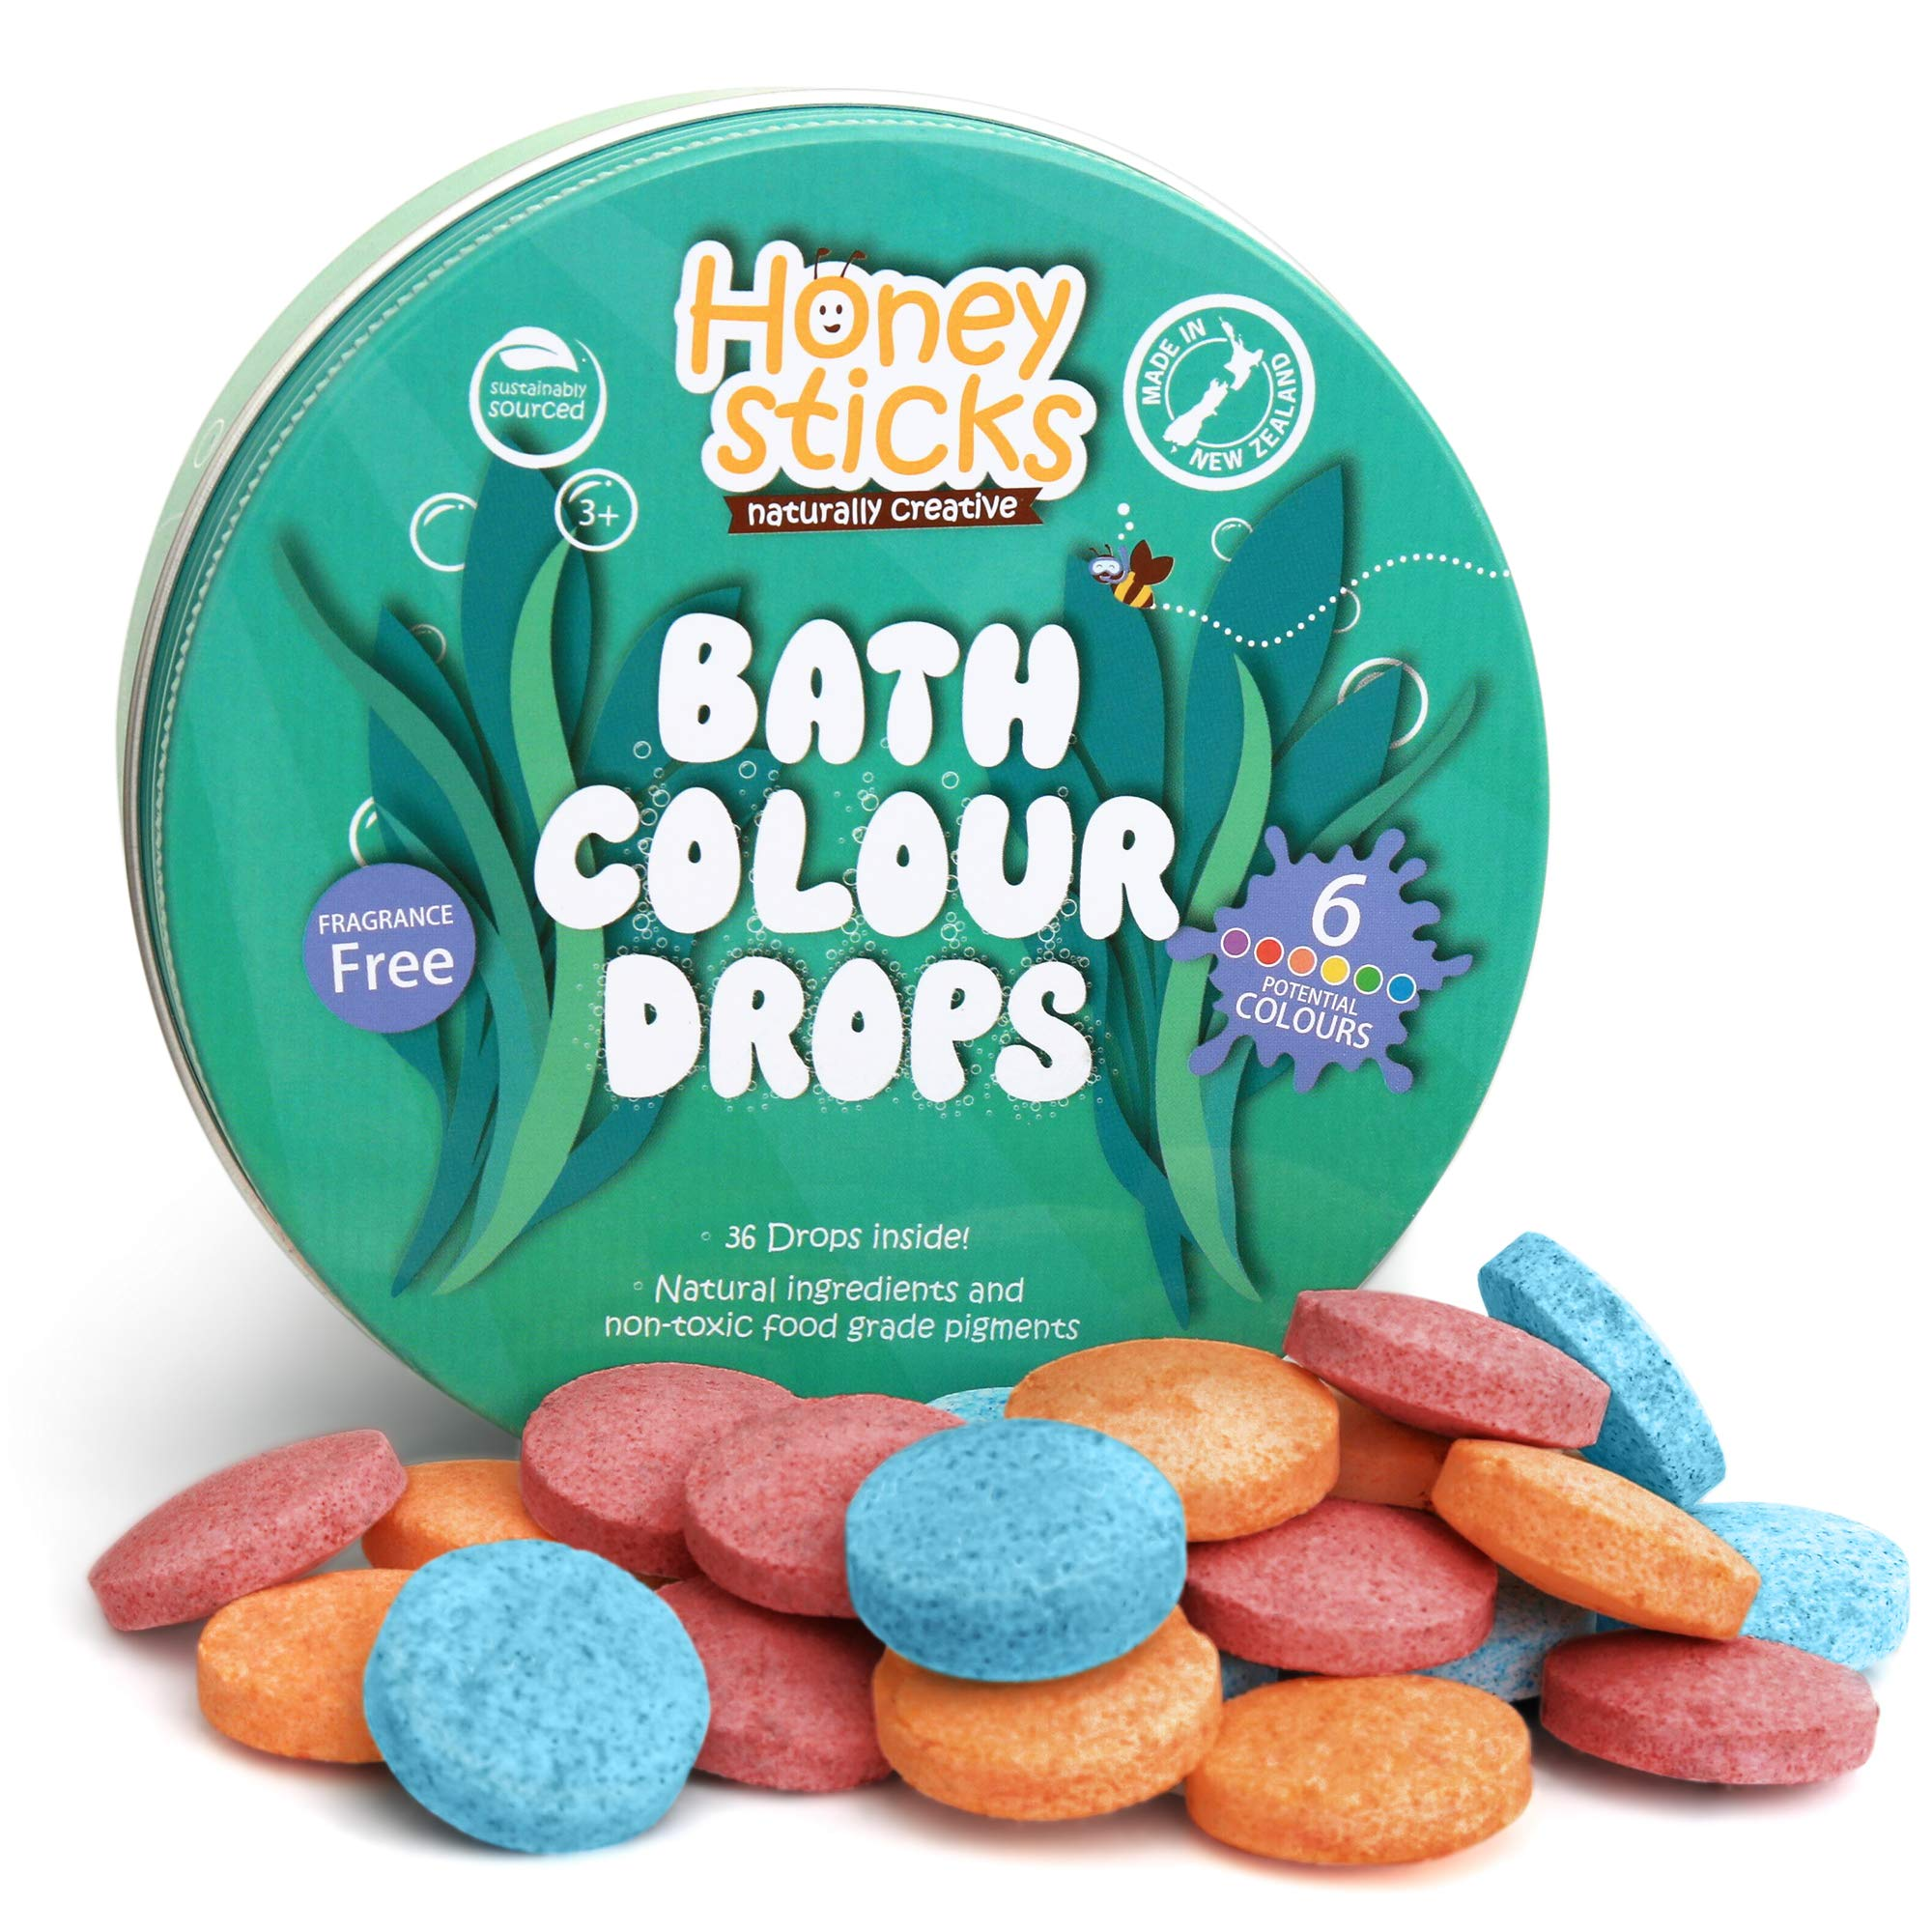 Honeysticks Bath Color Tablets for Kids - Non Toxic Bathtub Color Drops Made with Natural and Food Grade Ingredients - Fragrance Free - Fizzy, Brightly Colored Bathtime Fun, Great Gift Idea - 36 Drops